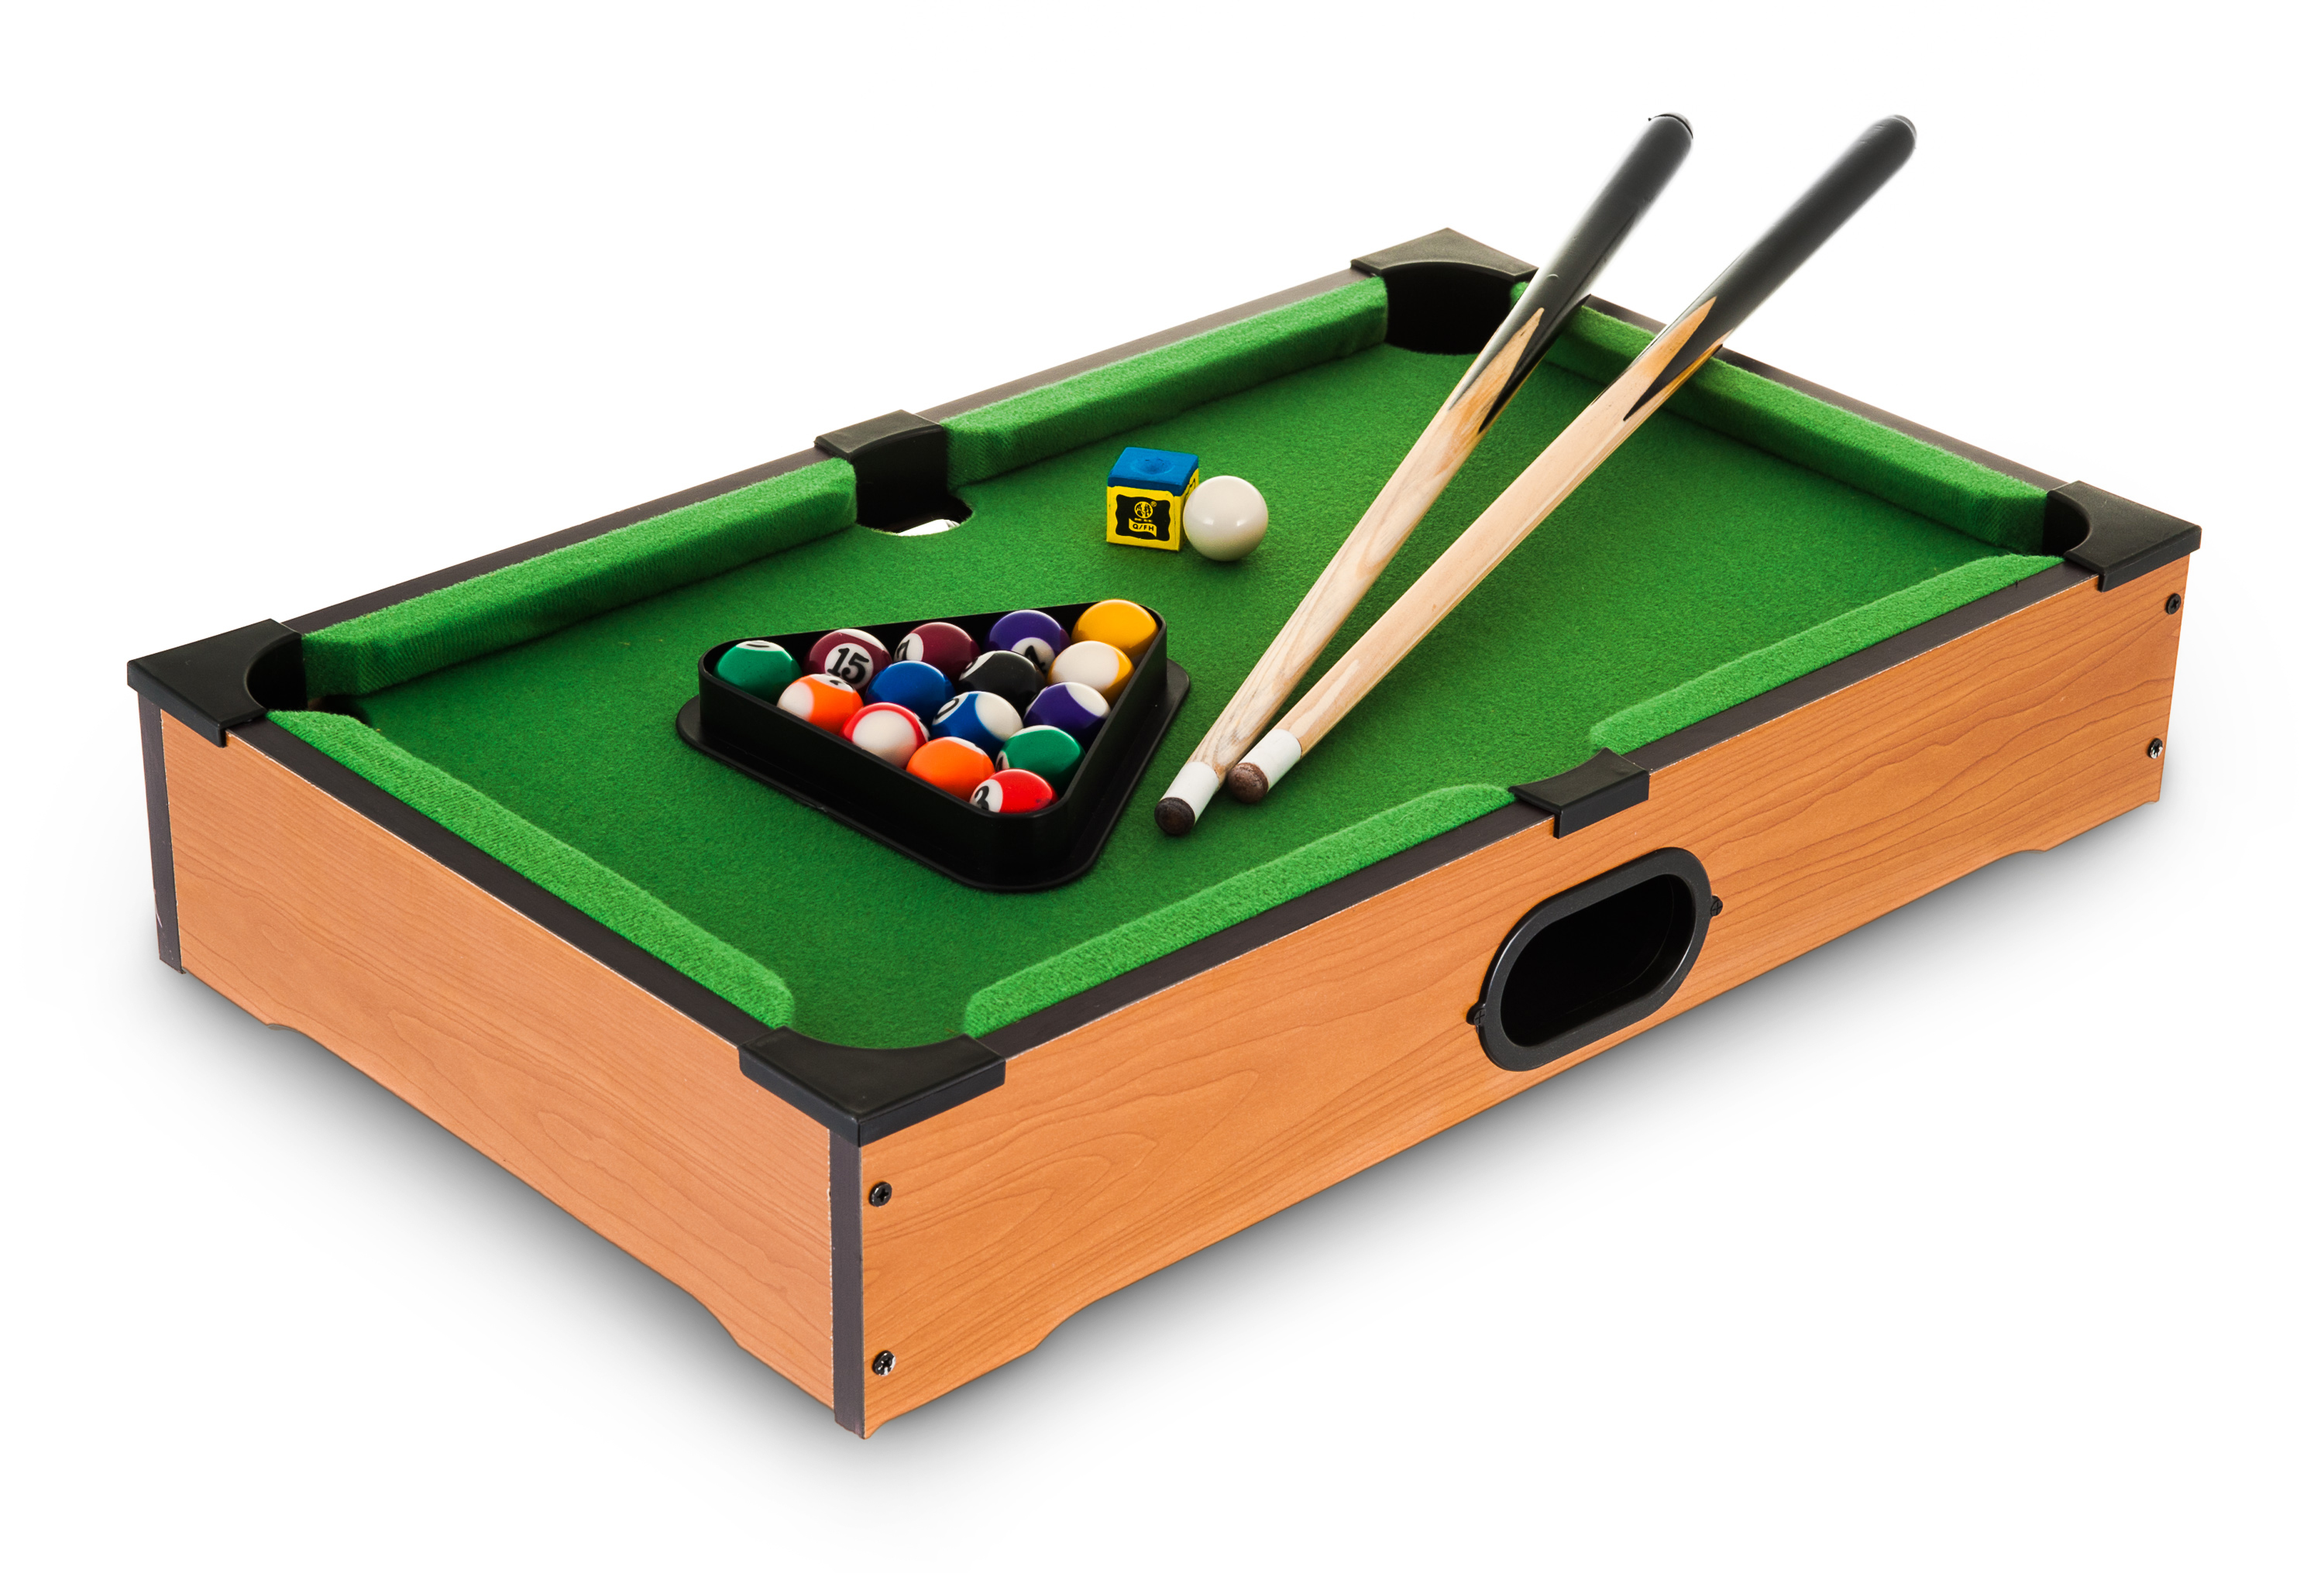 WOODEN TABLE TOP MINI DELUXE KIDS CHILDREN POOL PLAY SET CUES BALLS - Used mini pool table